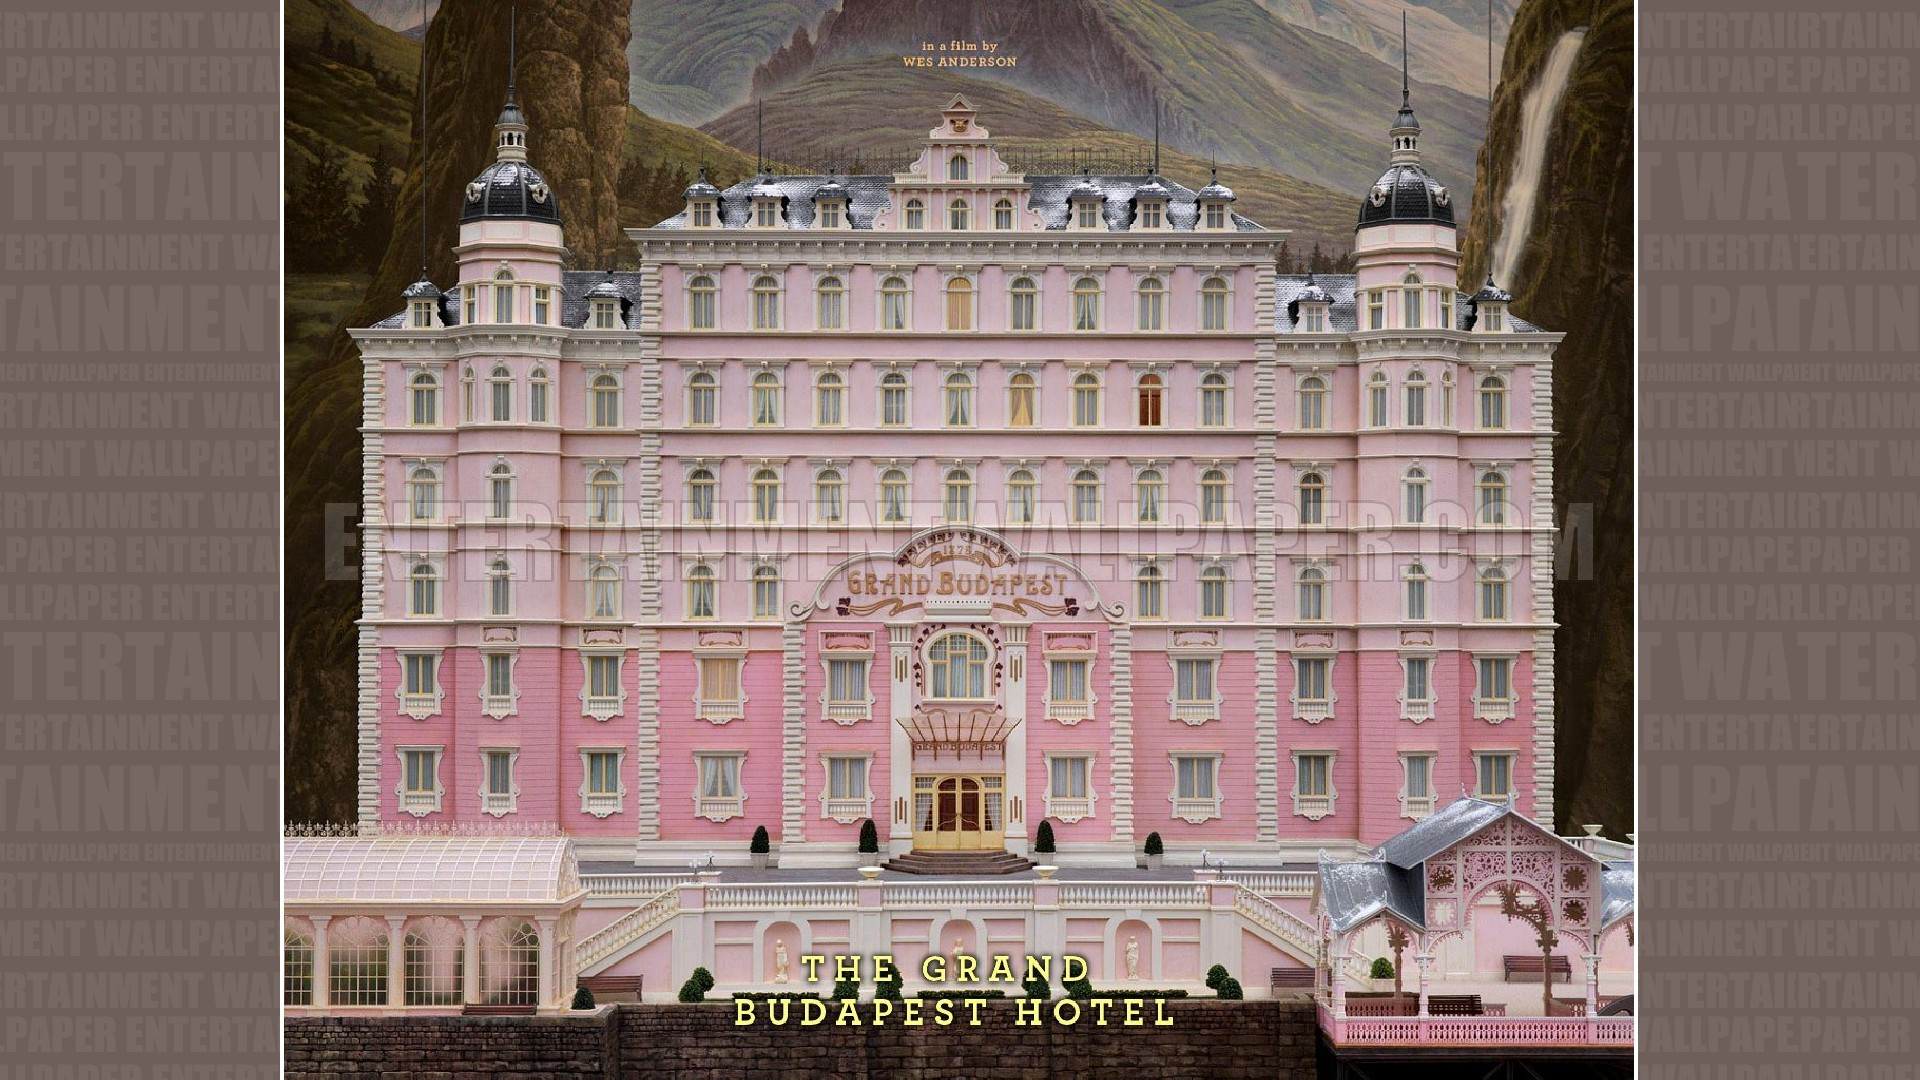 The Grand Budapest Hotel Wallpaper – Original size, download now.